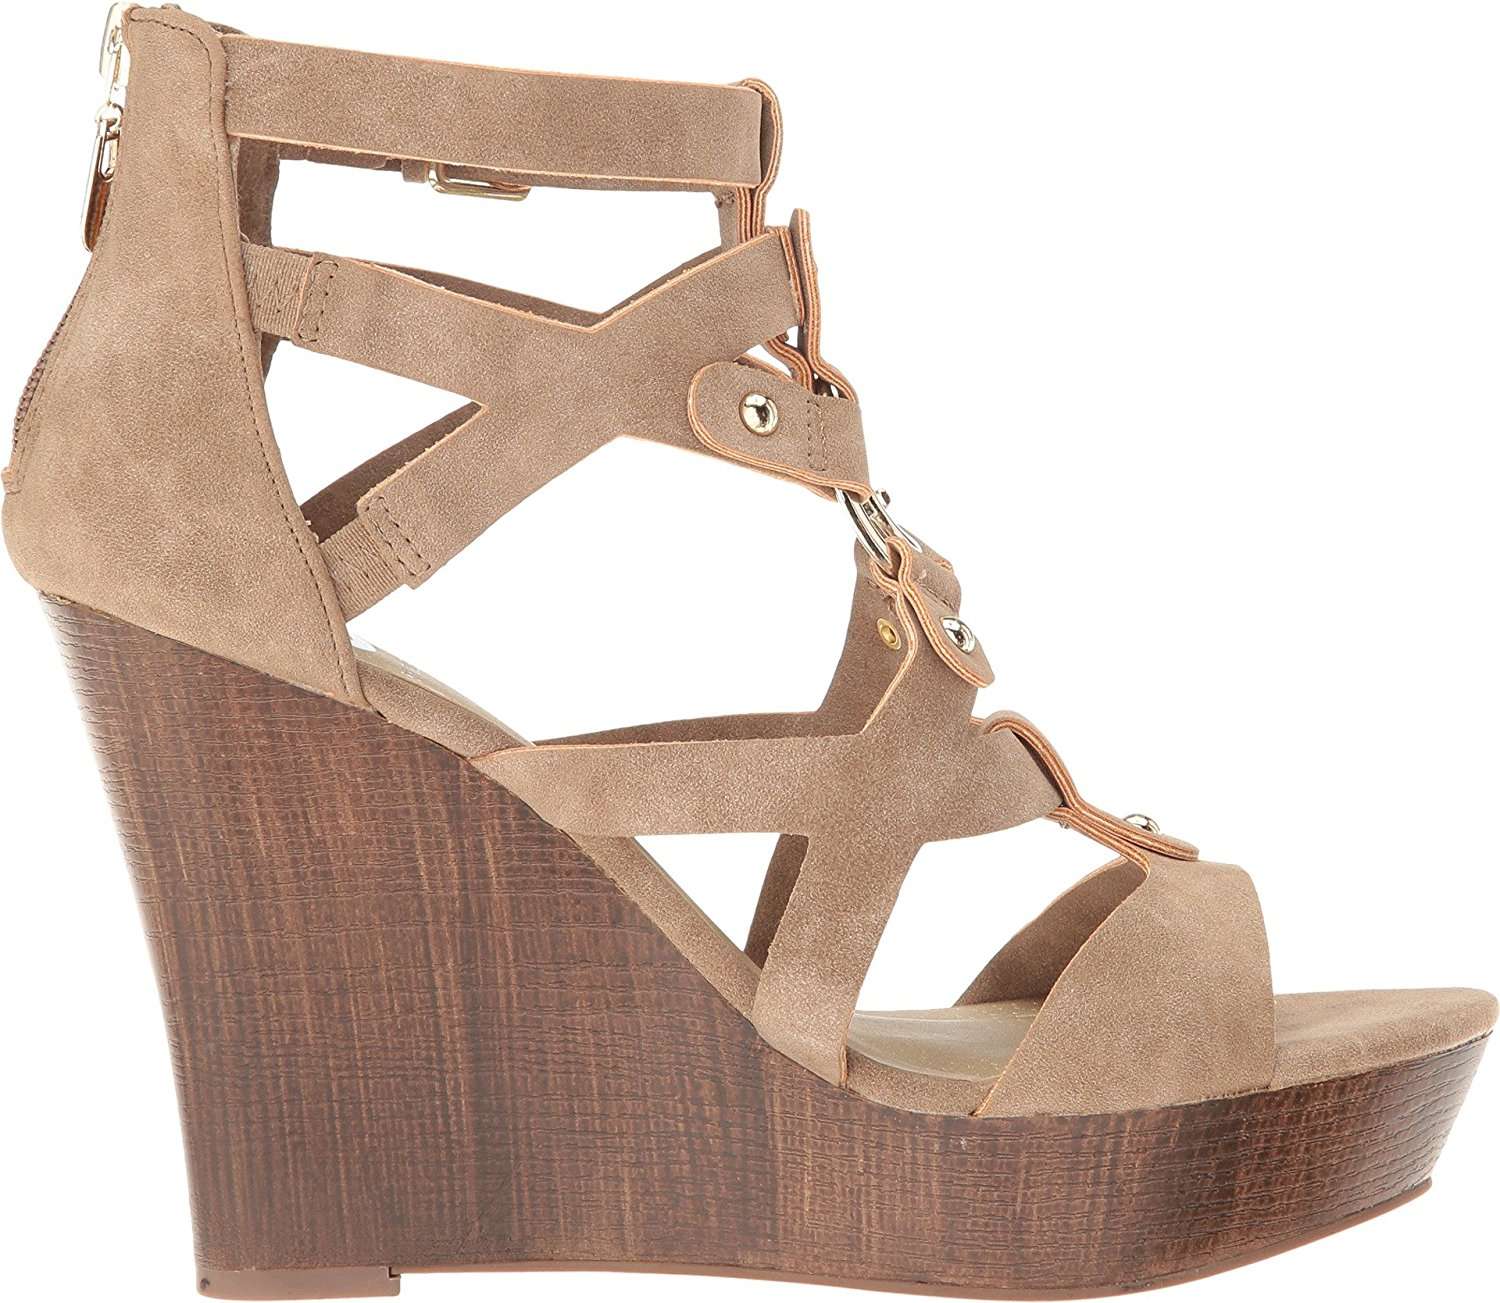 f3a86dcf9 G by Guess - G by Guess Womens Dodge Open Toe Casual Platform Sandals -  Walmart.com